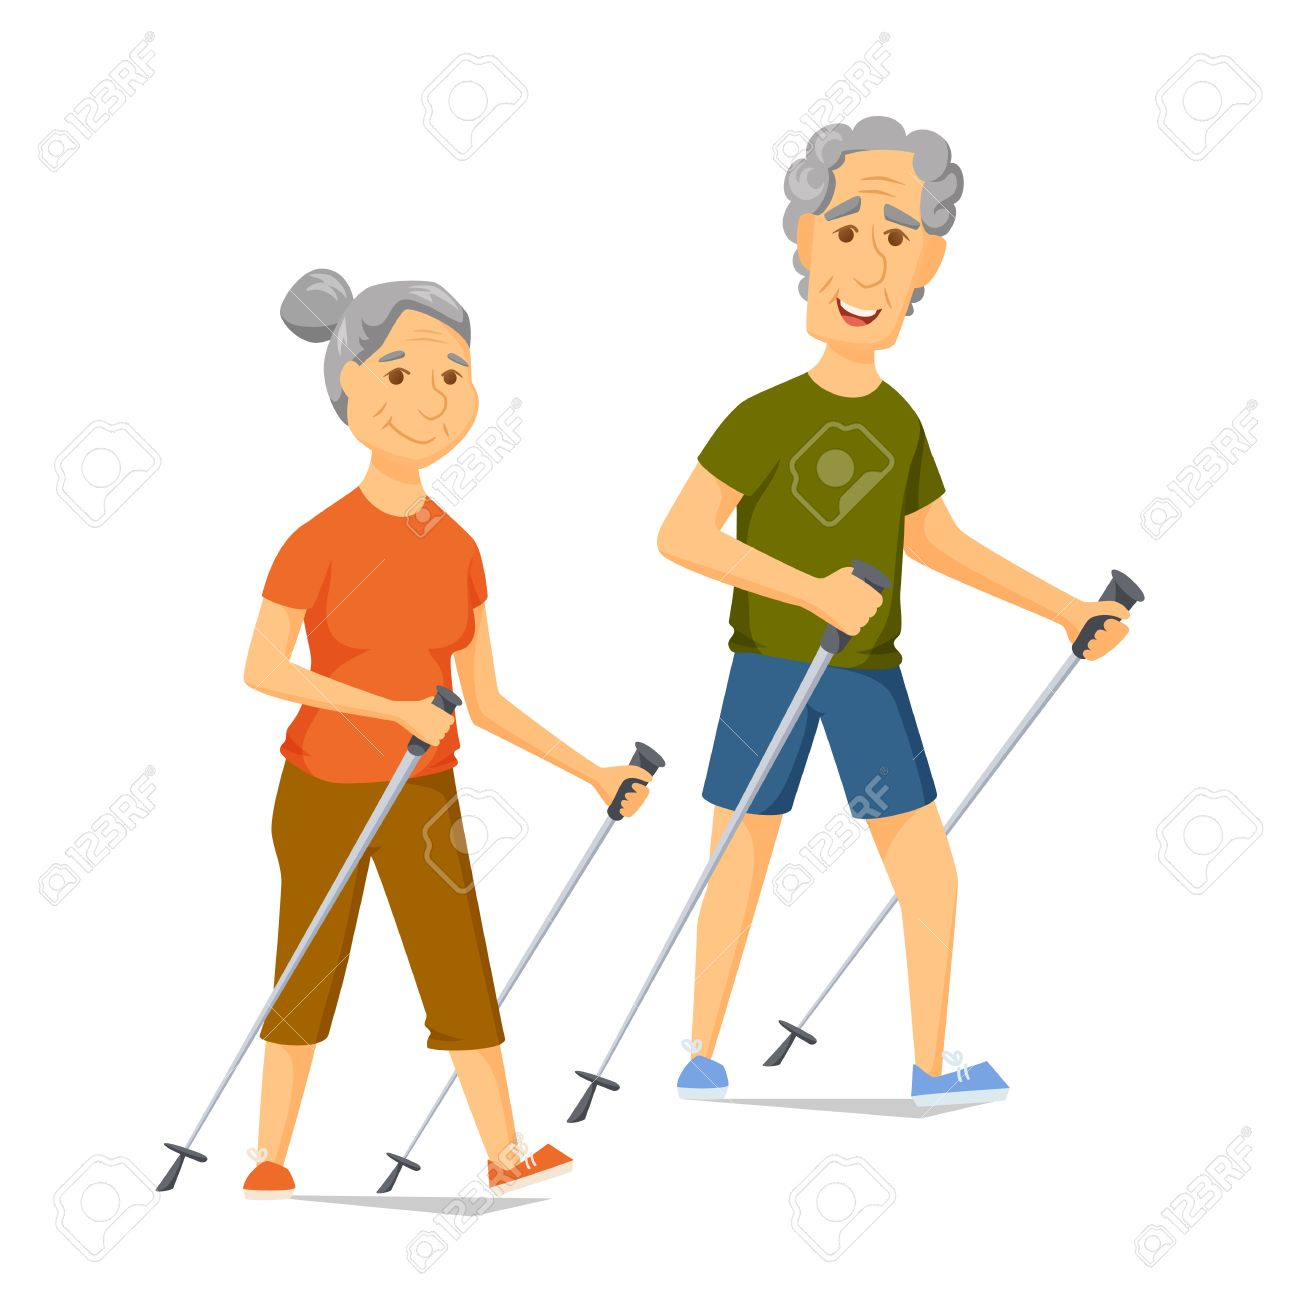 Seniors Nordic Walking Pensioners Walk Together Old Man And